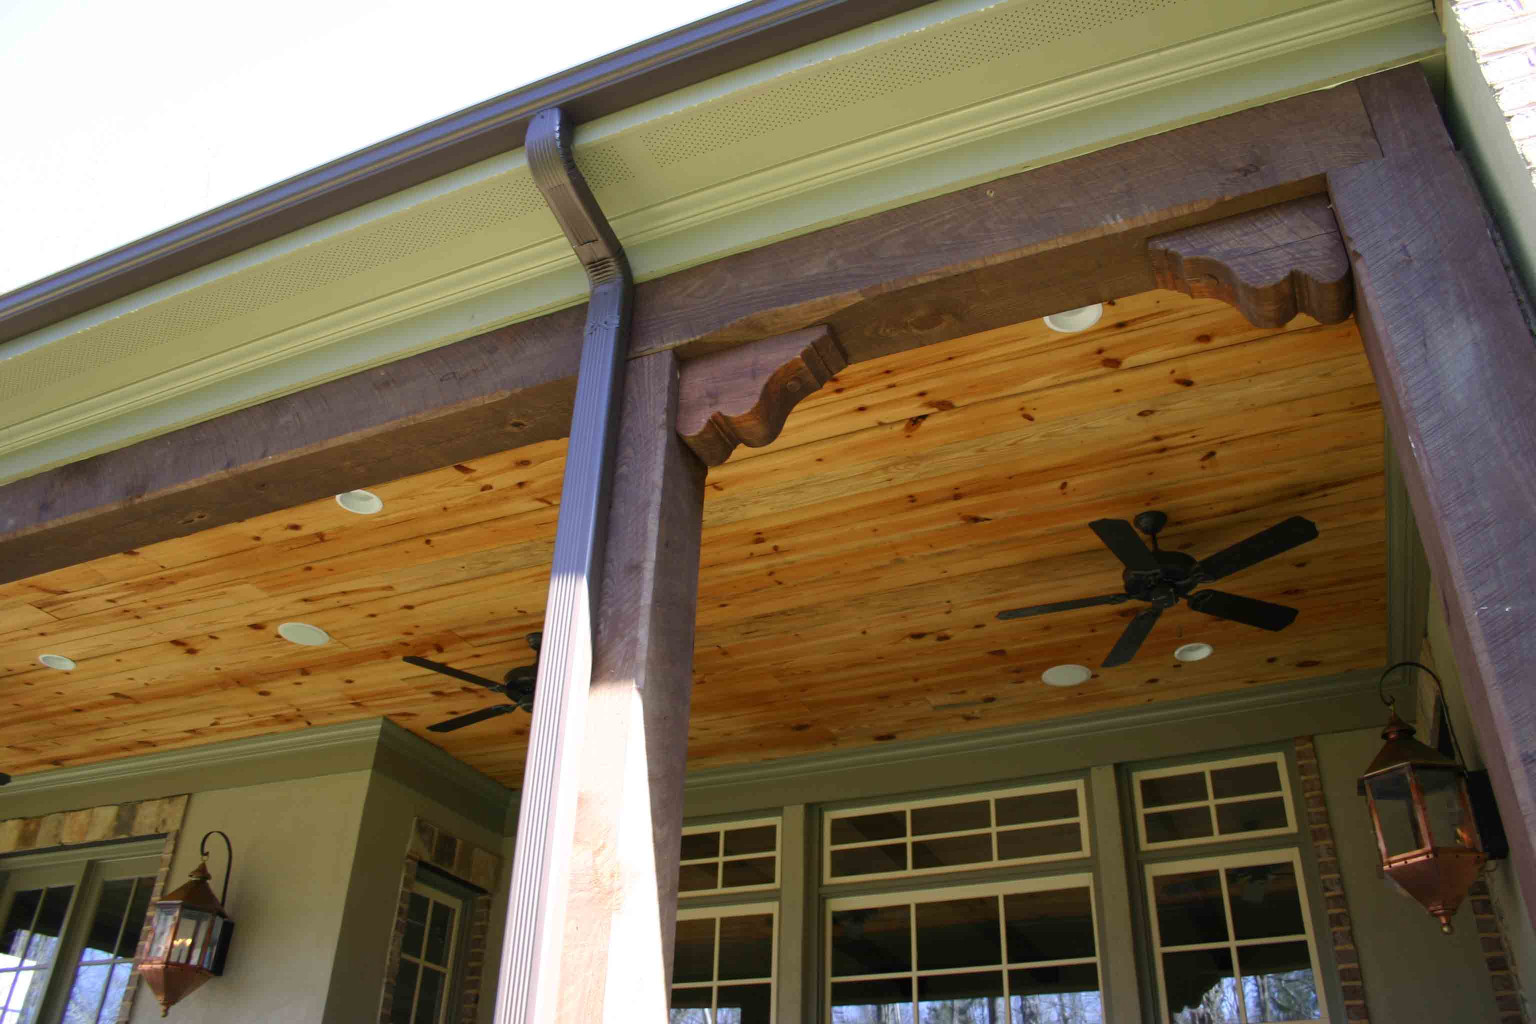 The wood corbels in this feature show the many uses of corbels.